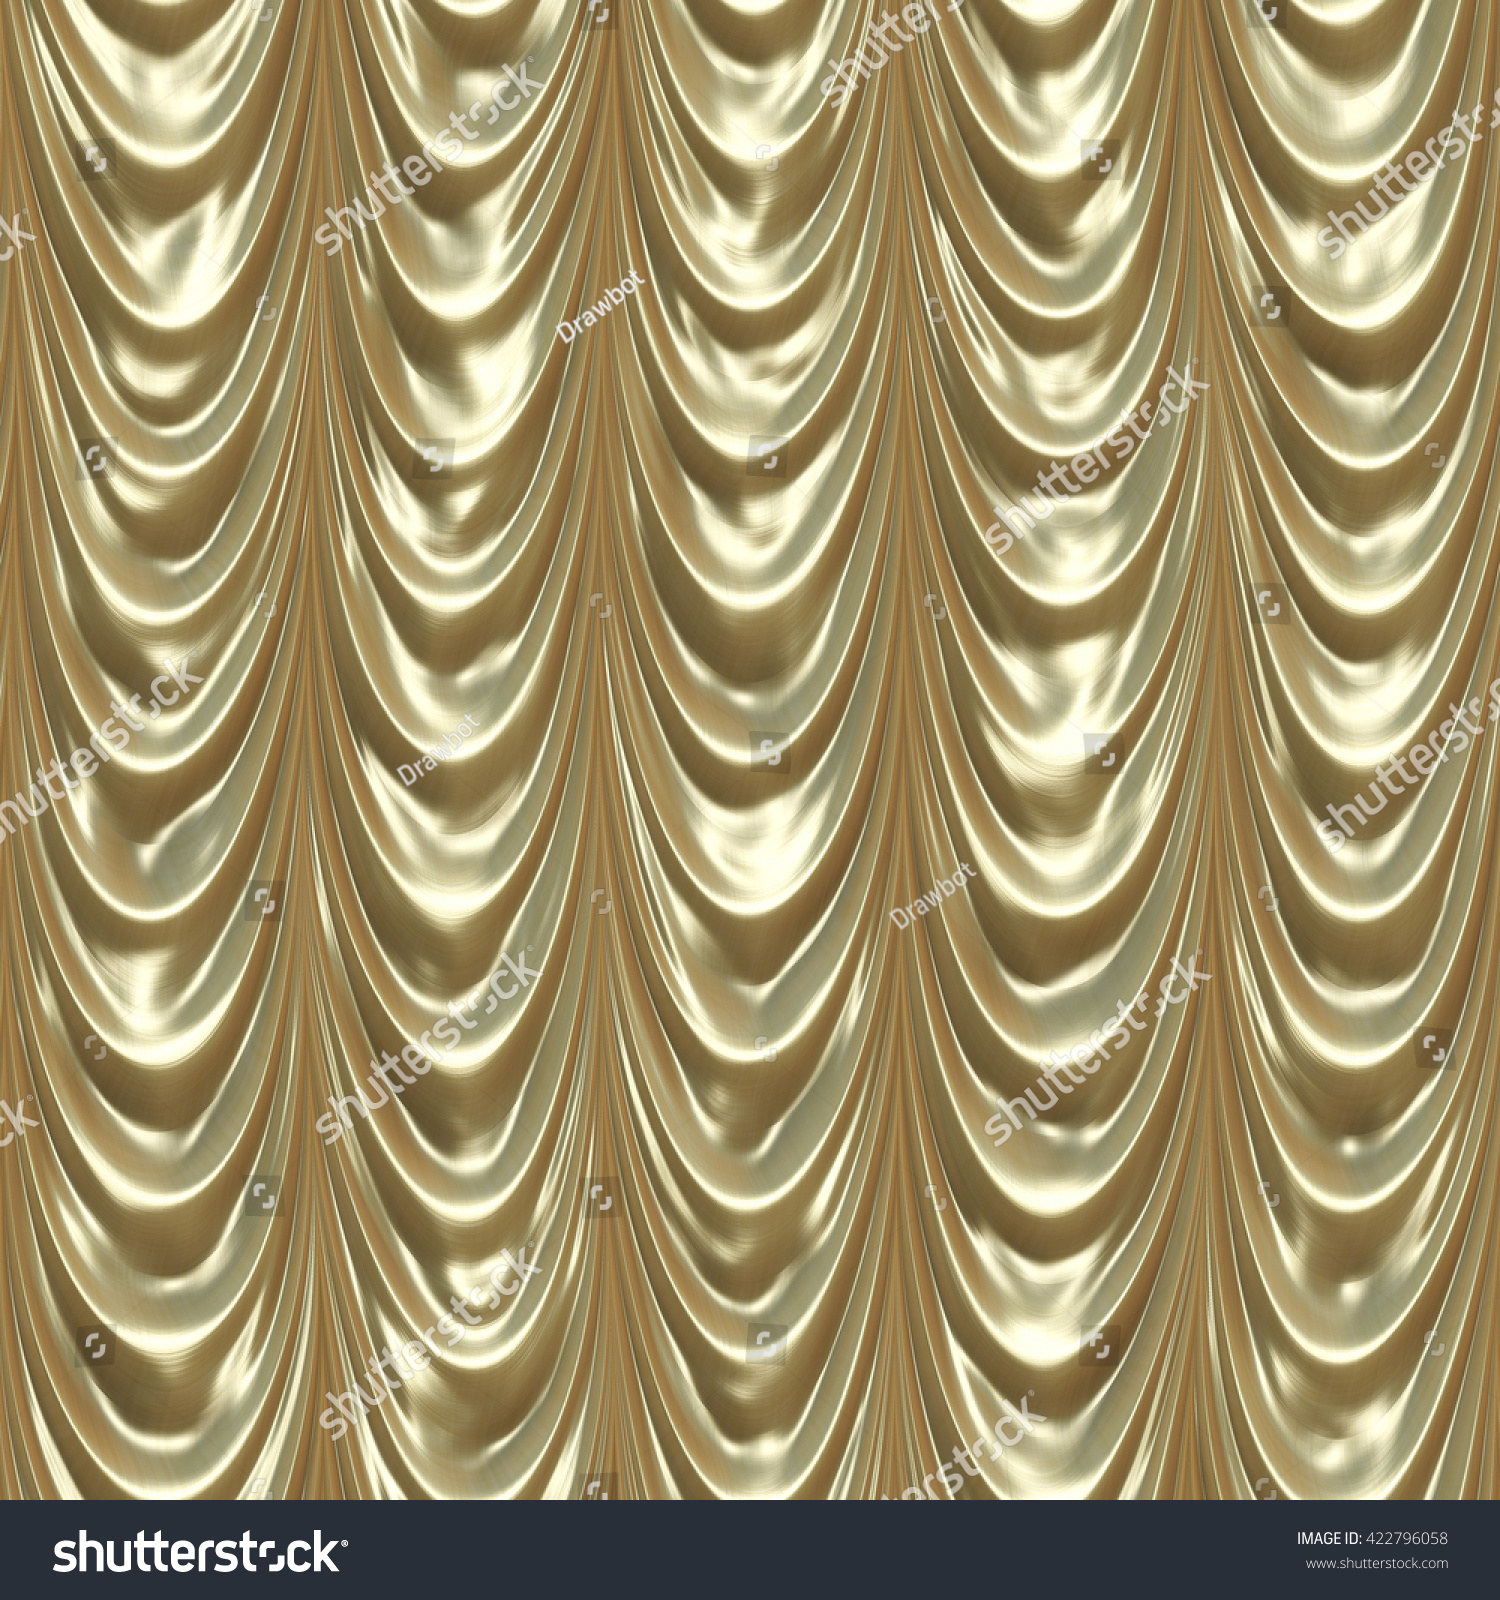 Curtain Texture Seamless decadent draperycurtain texture background tiles seamless stock